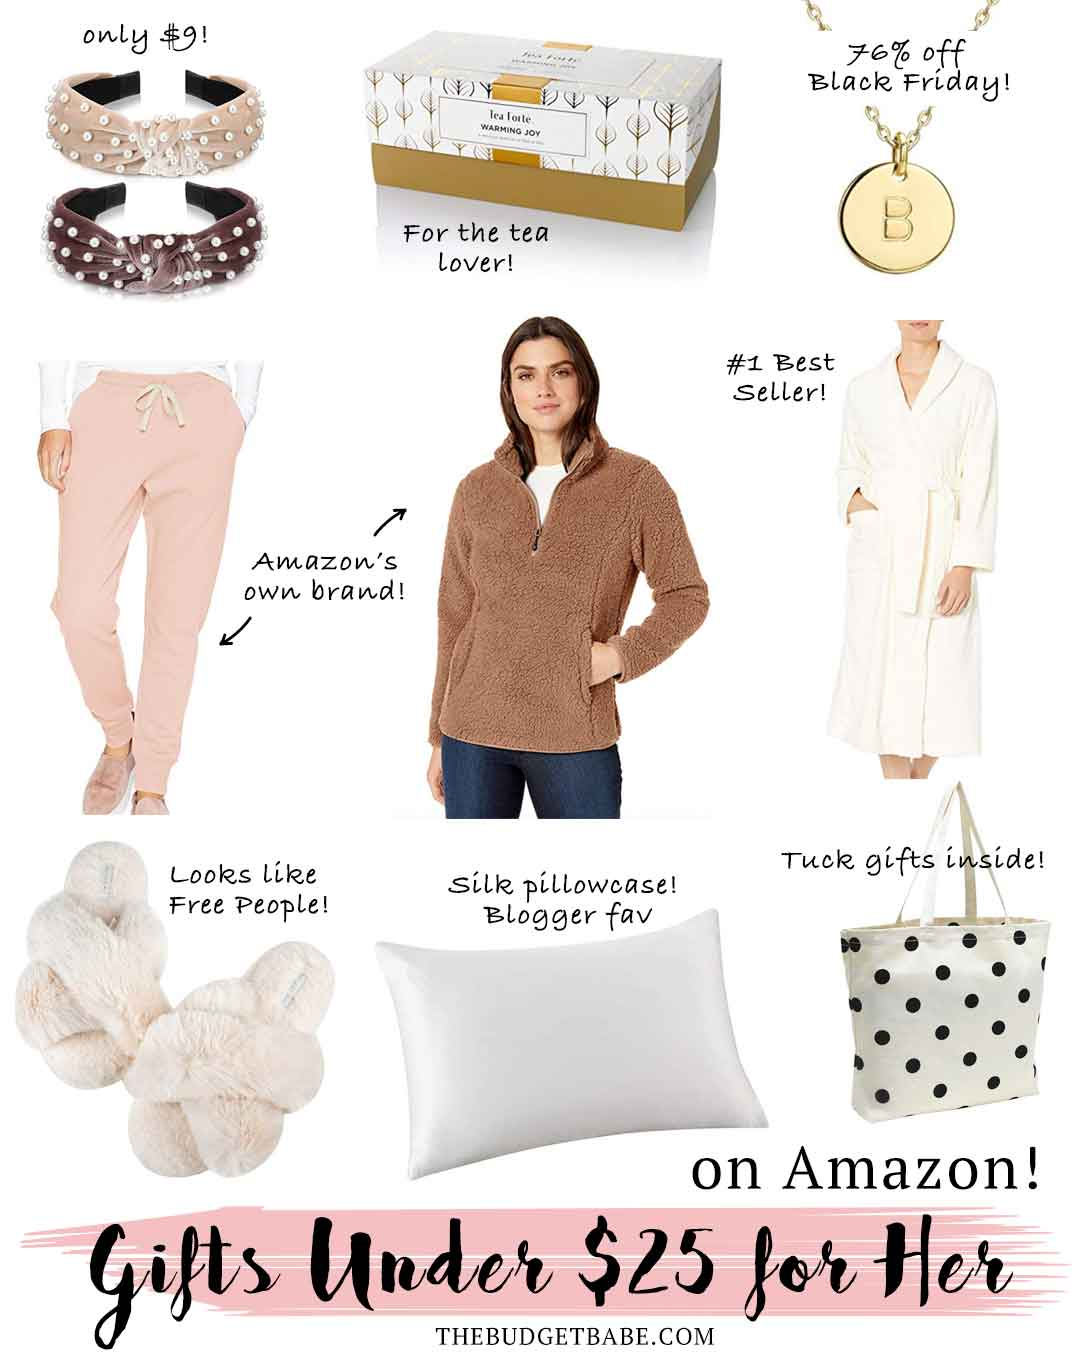 Holiday Gift Ideas Under $25 for Her on Amazon.com!